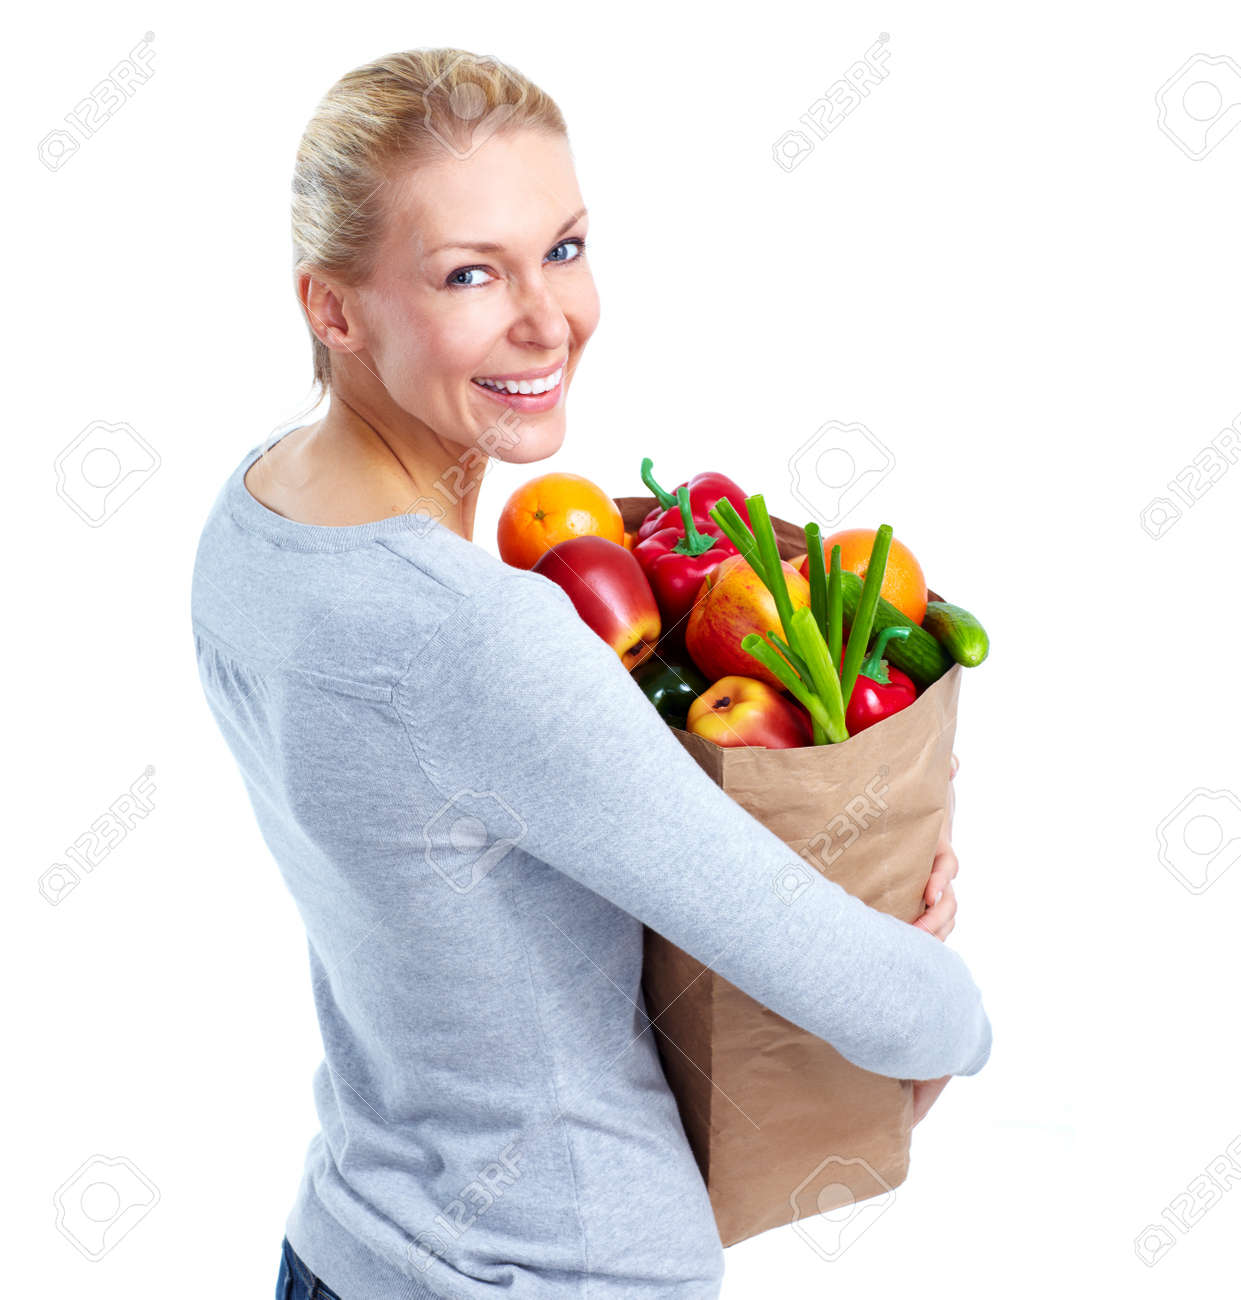 Stock Photo - Young woman with a grocery shopping bag. cc6baa359